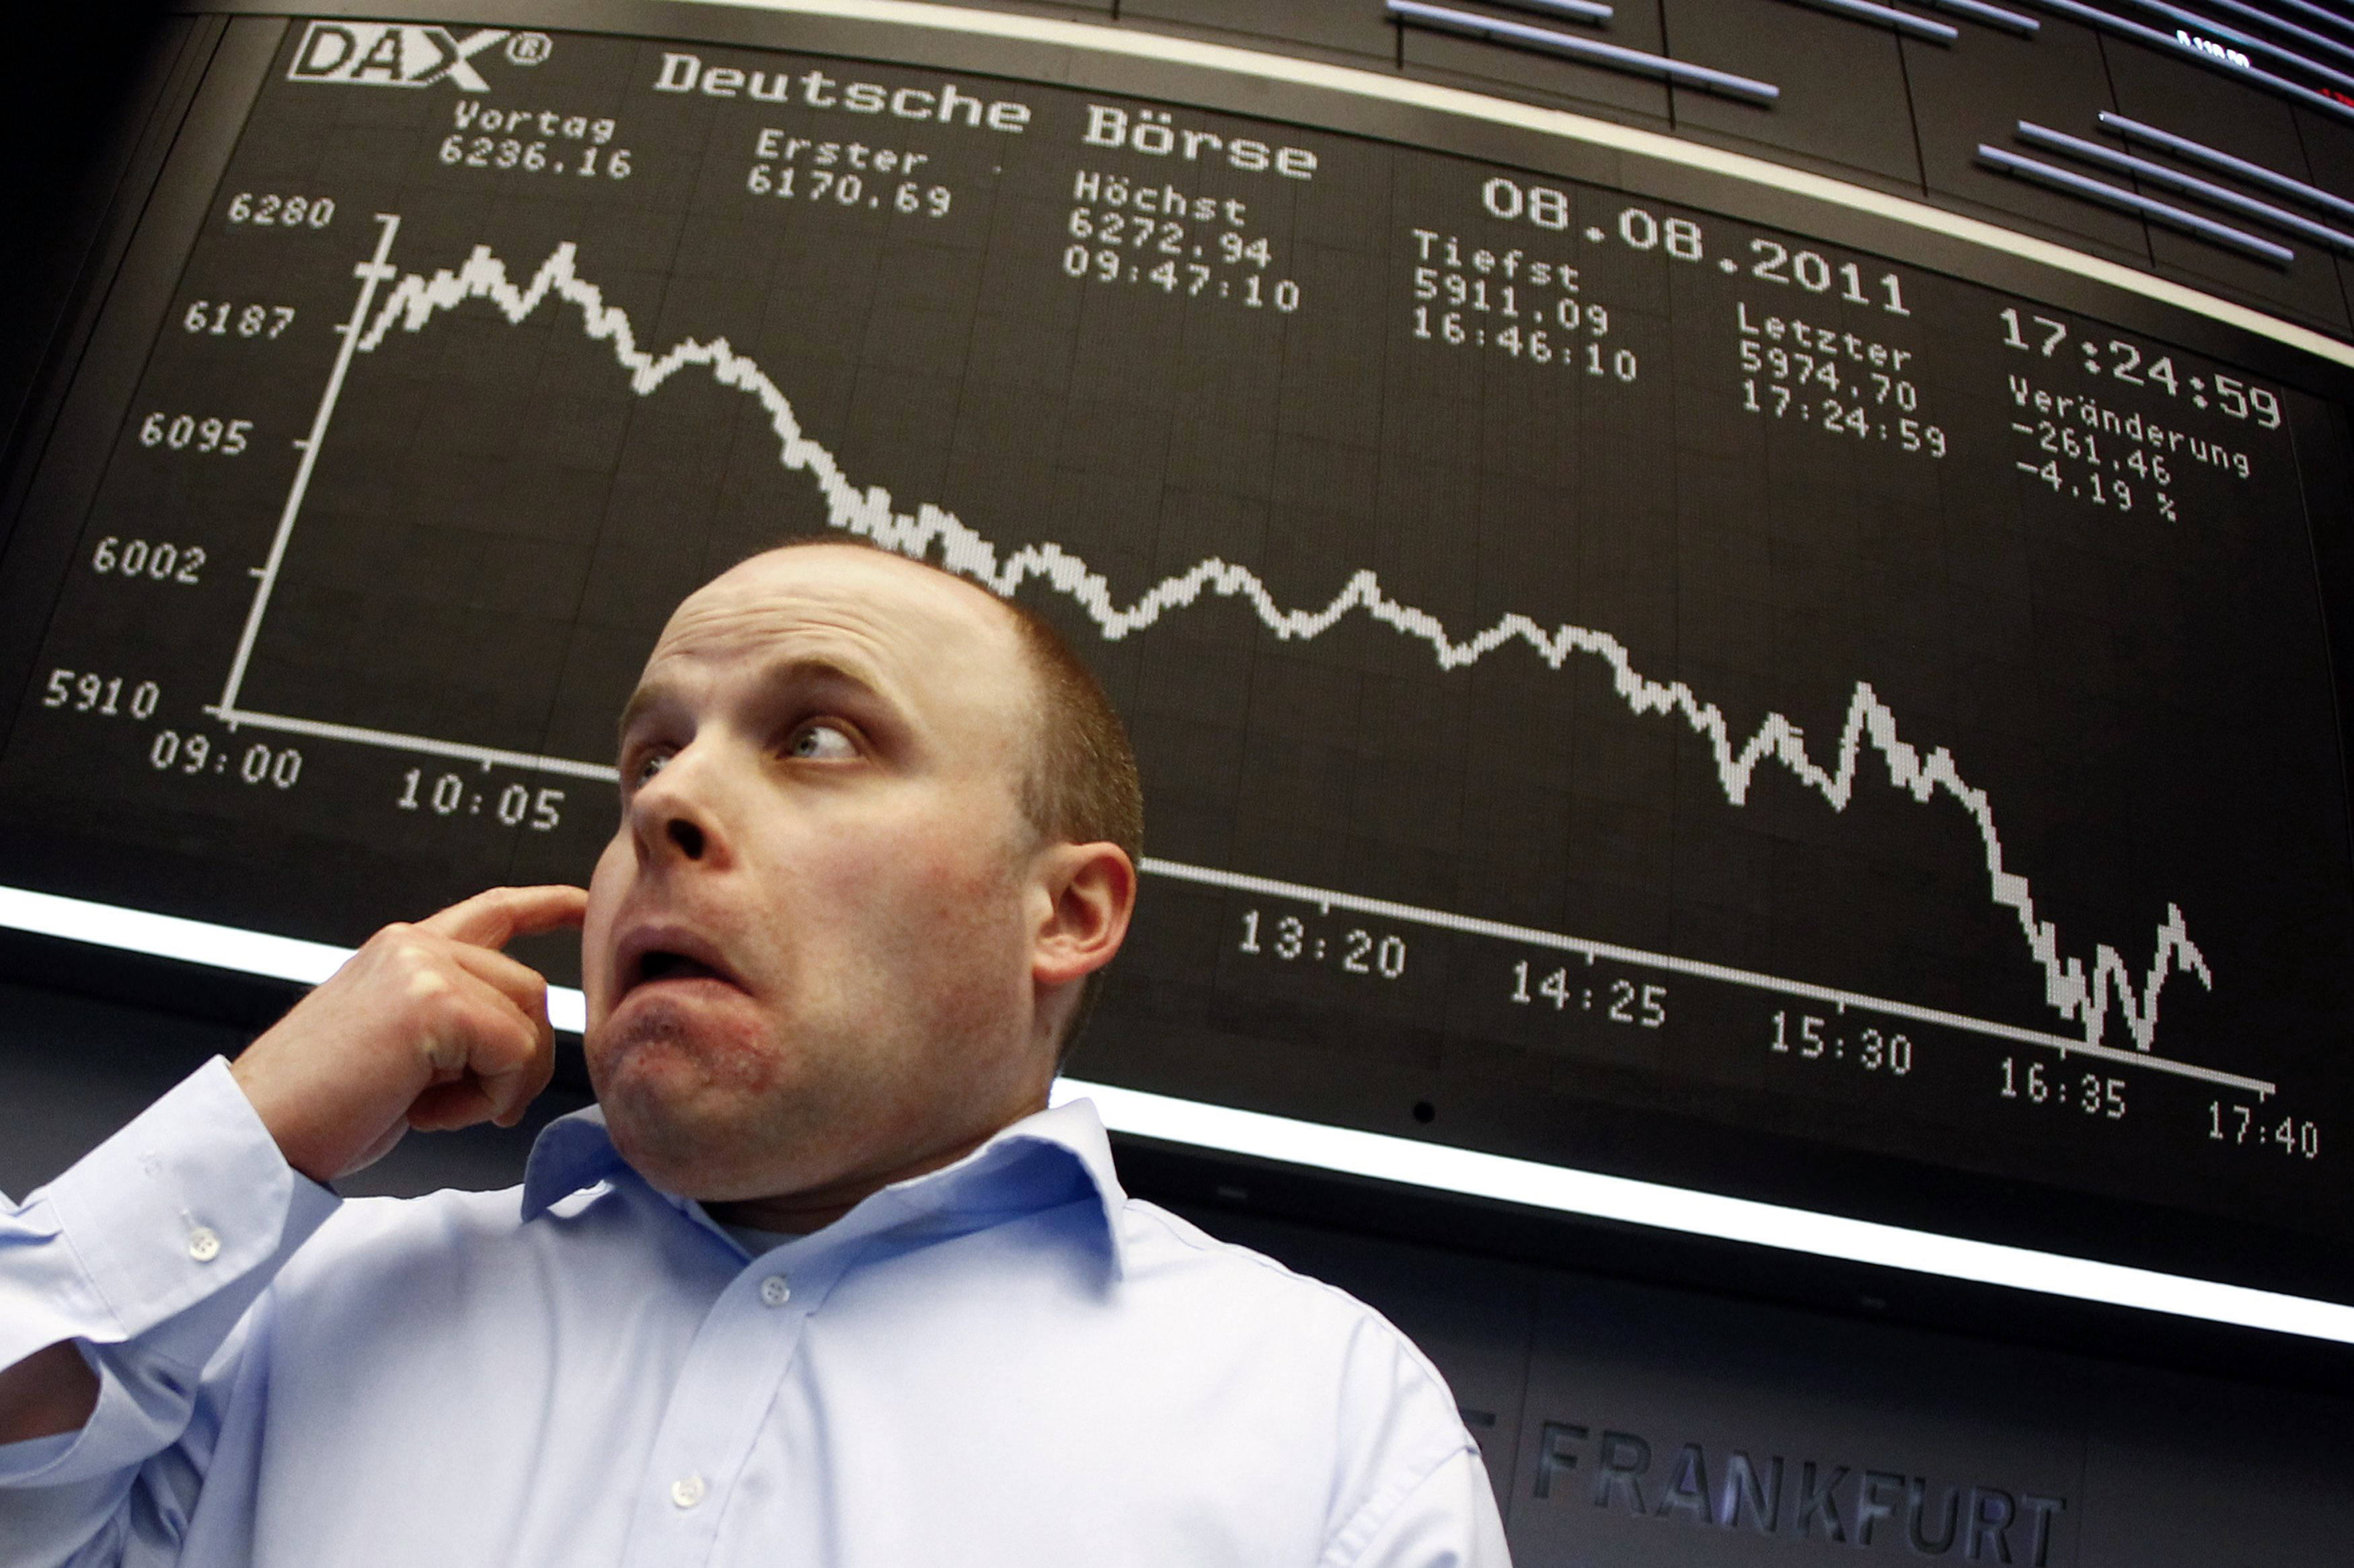 a stock trader reacts to a fall in the markets